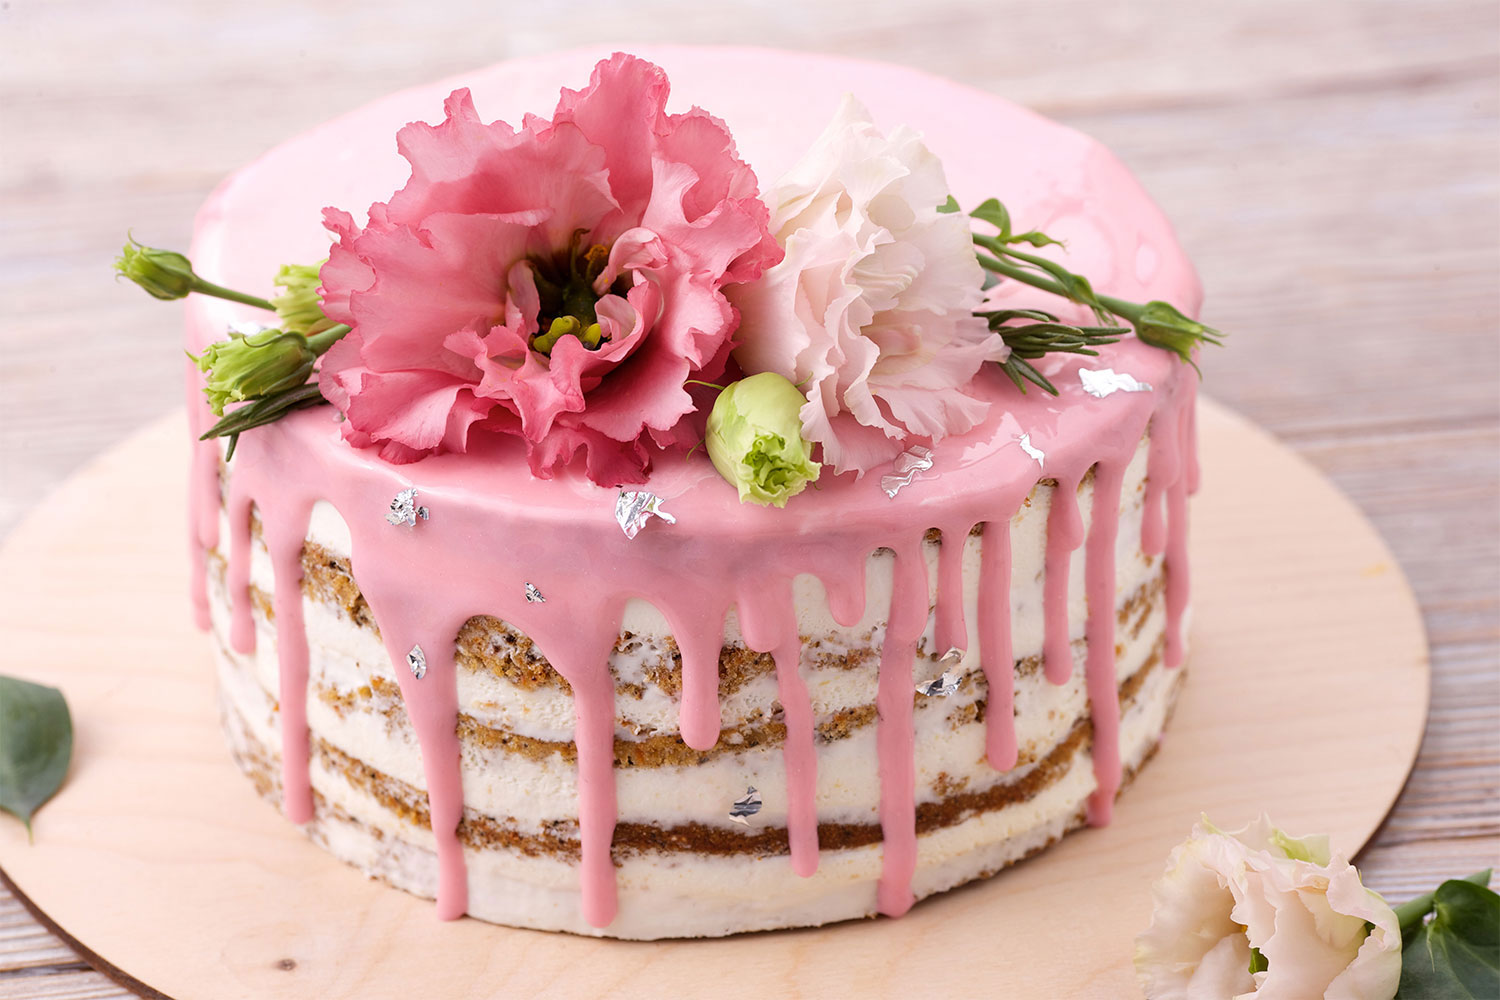 This Cake Decorating Trend Is More Harmful Than You Think